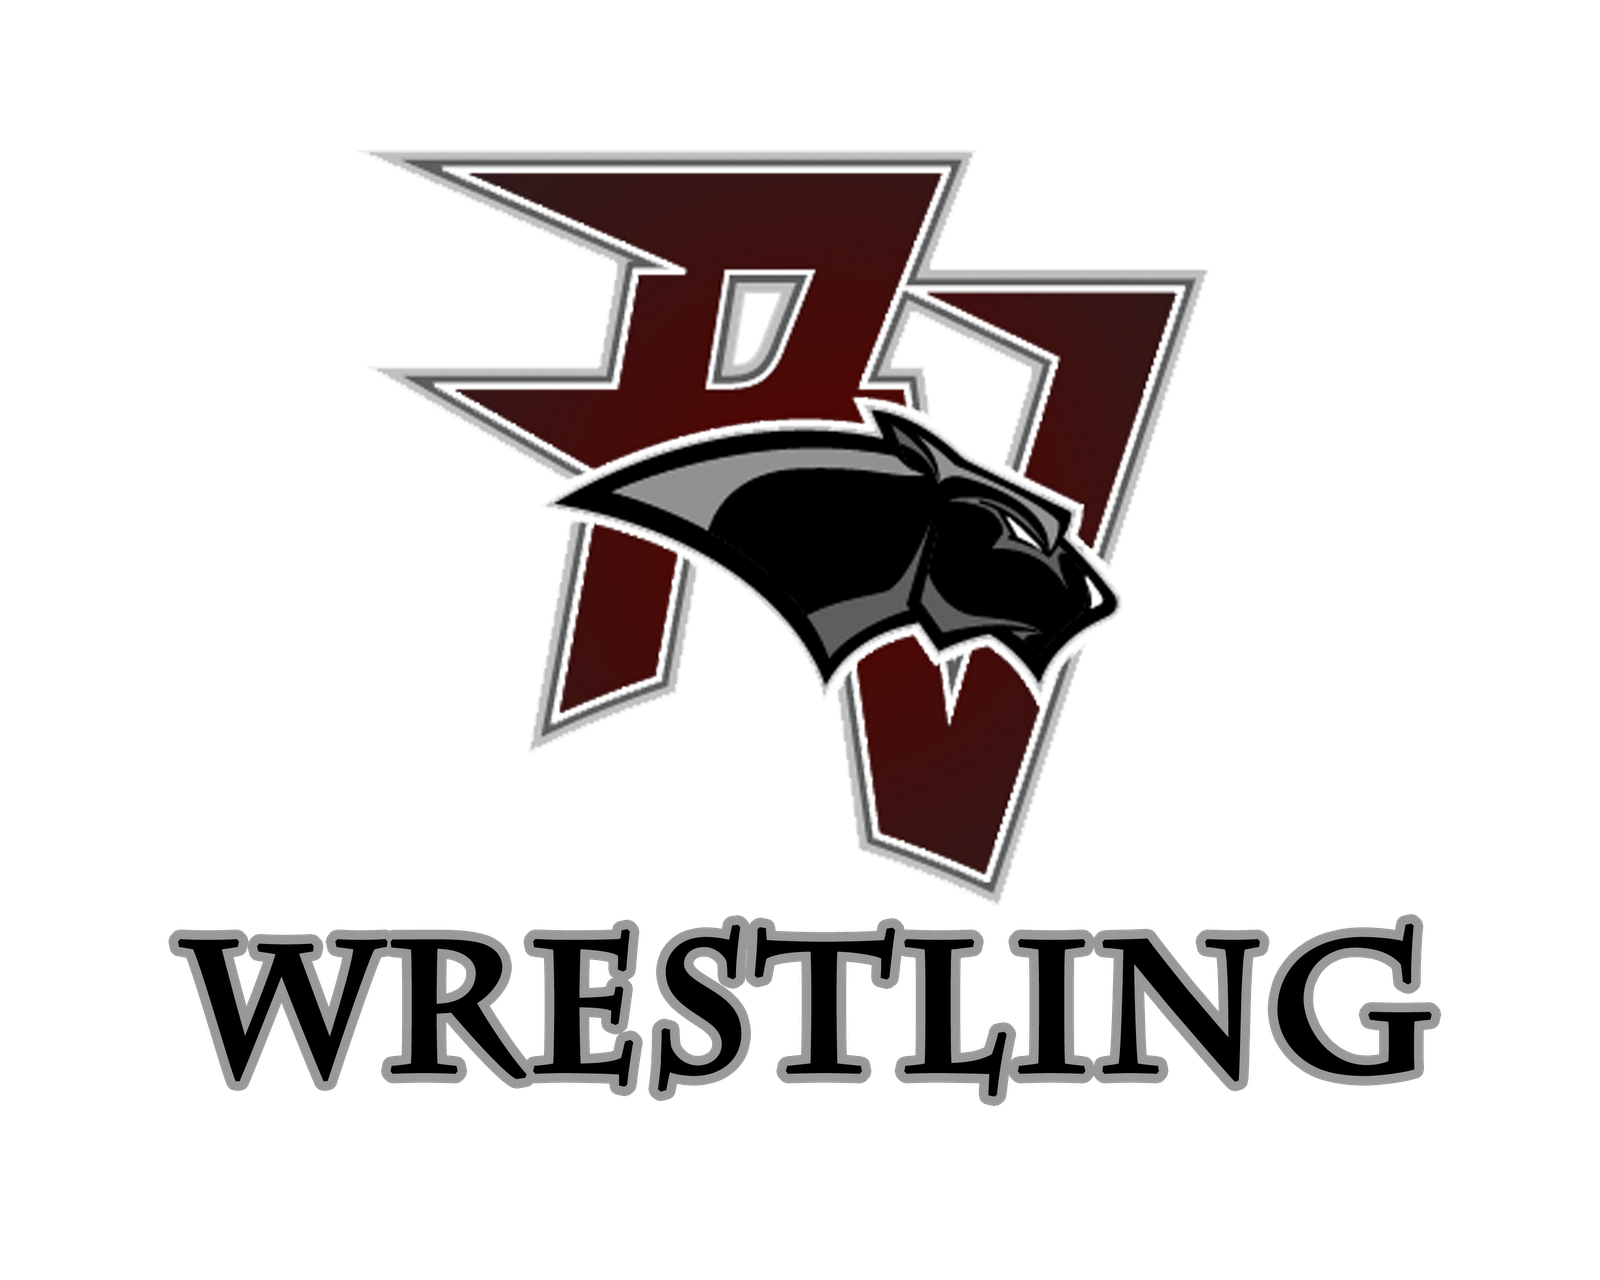 Pine View Wrestling Wrestling T Shirt Designs